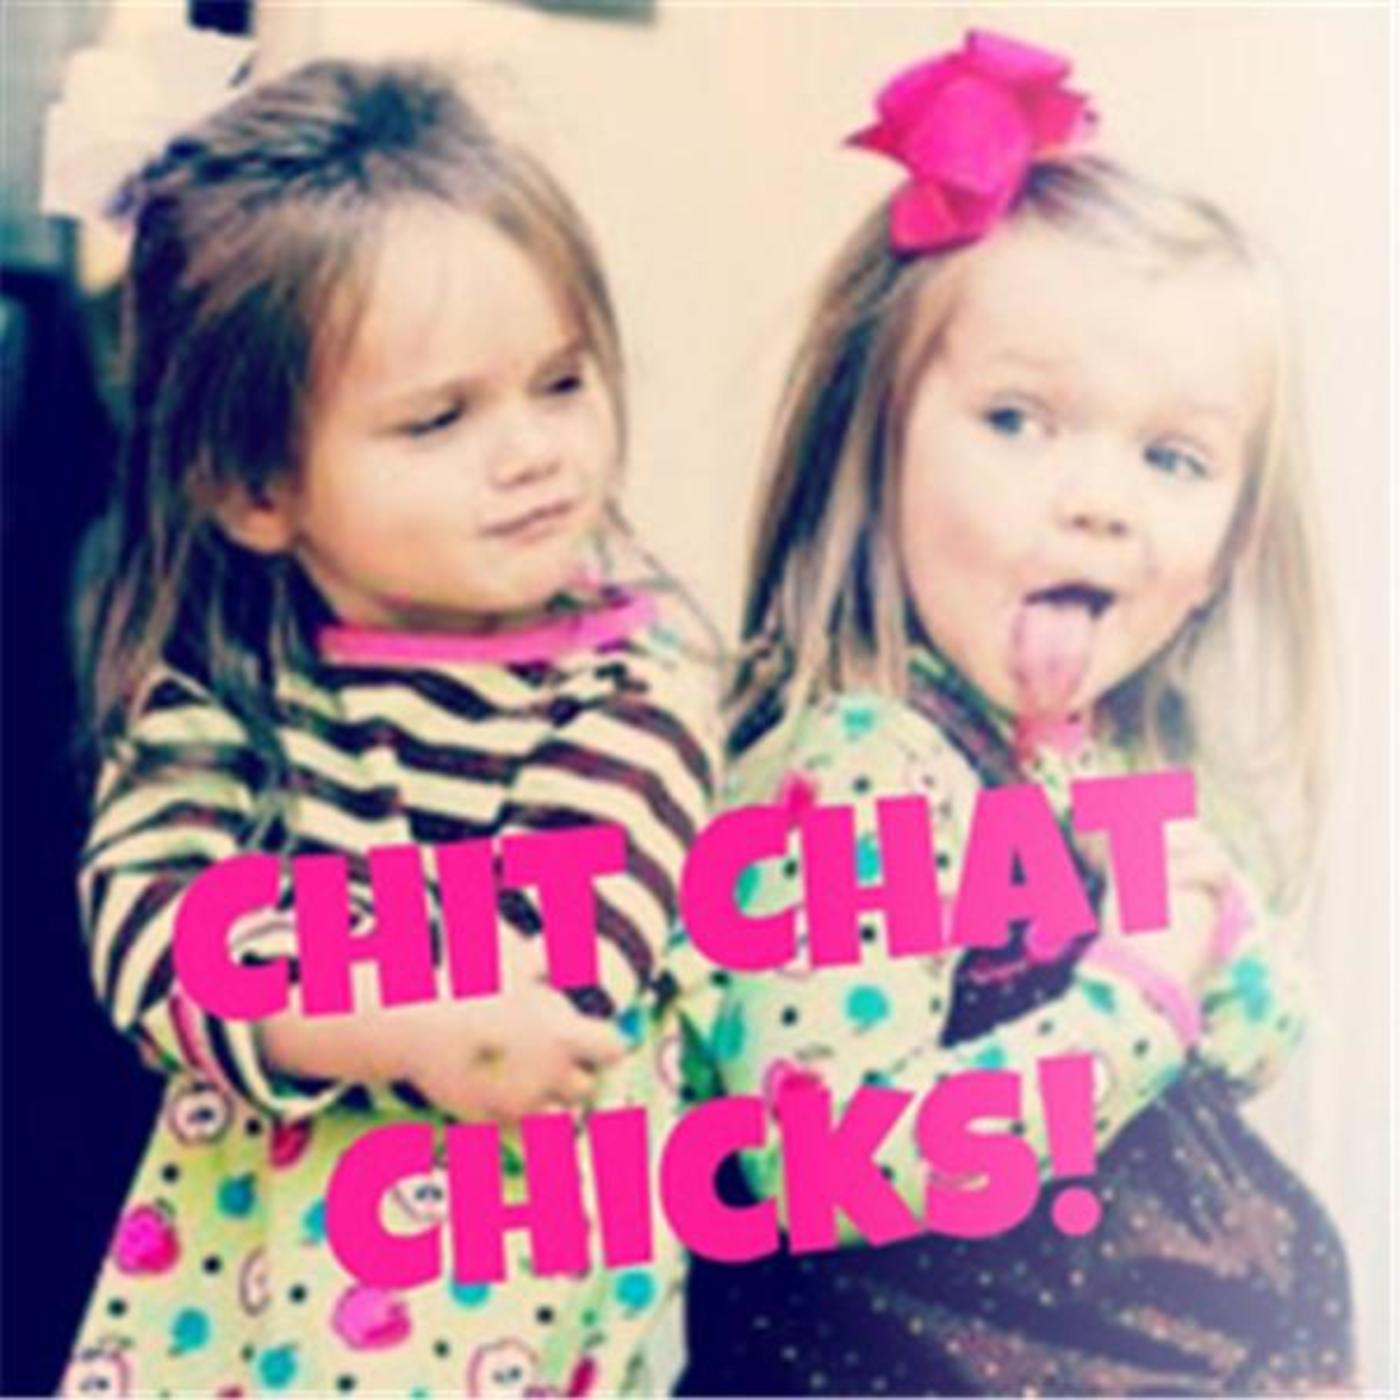 Chit Chat Chicks Live